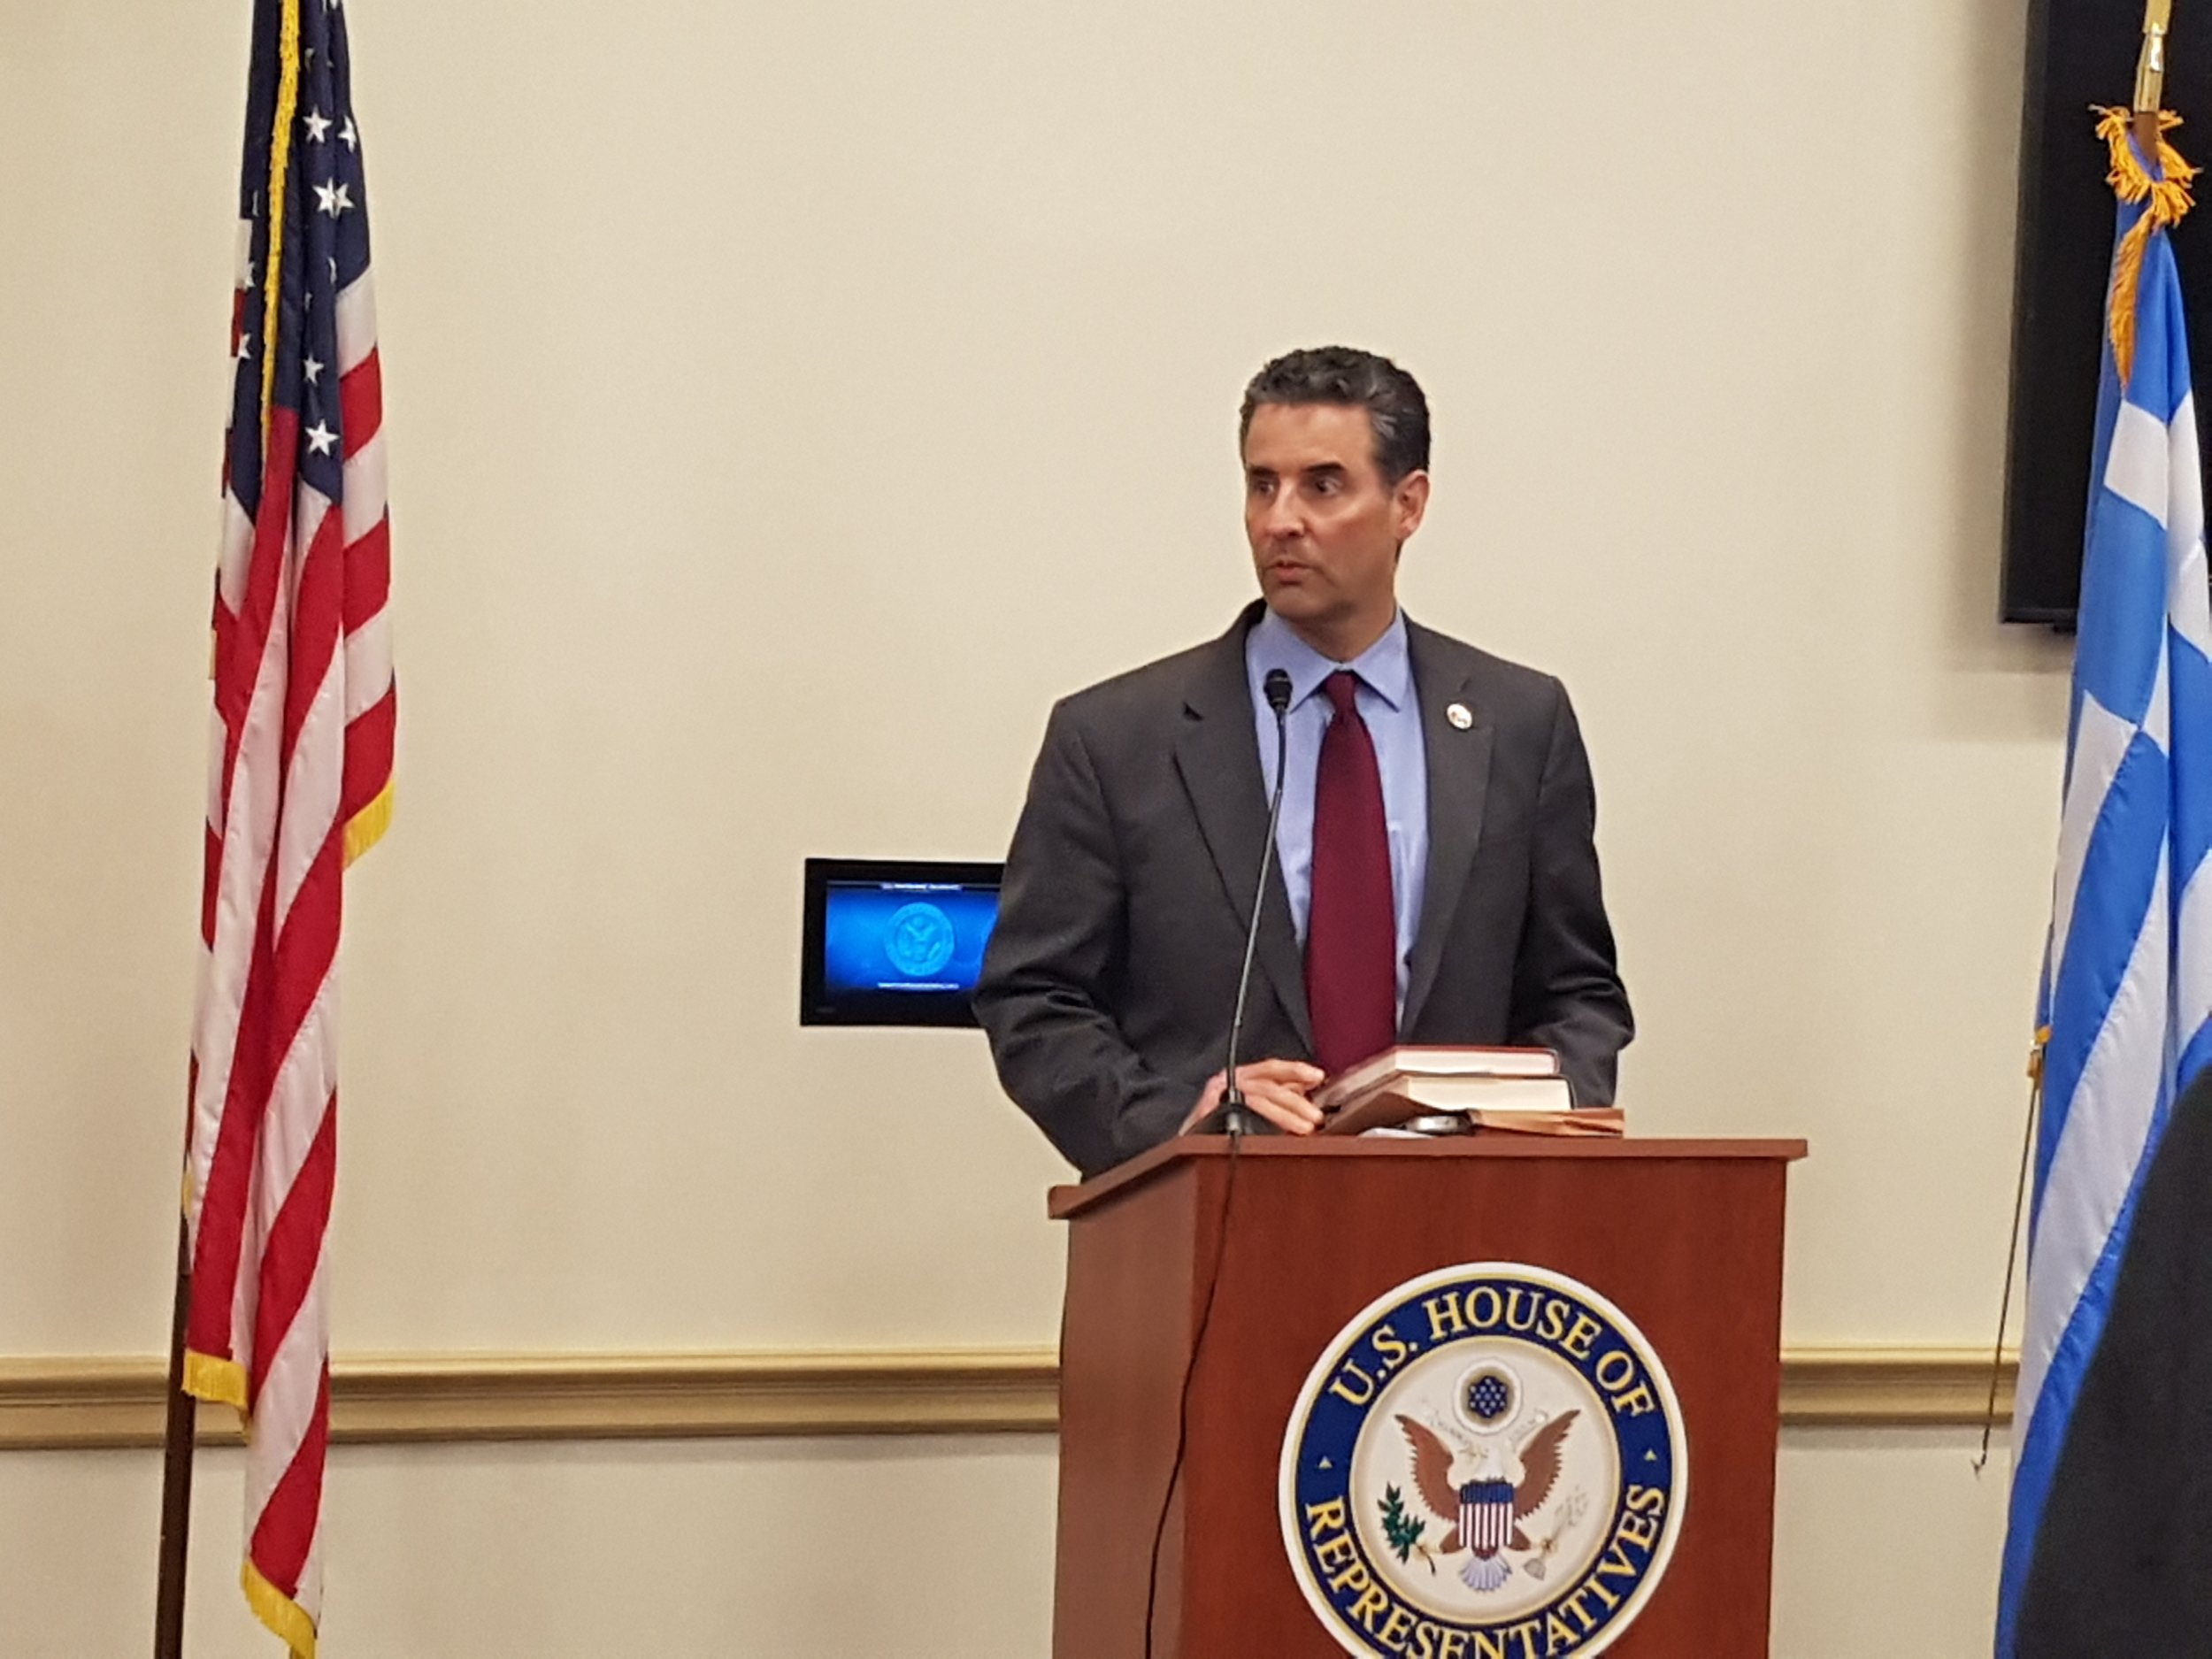 Rep. John Sarbanes (D-MD)